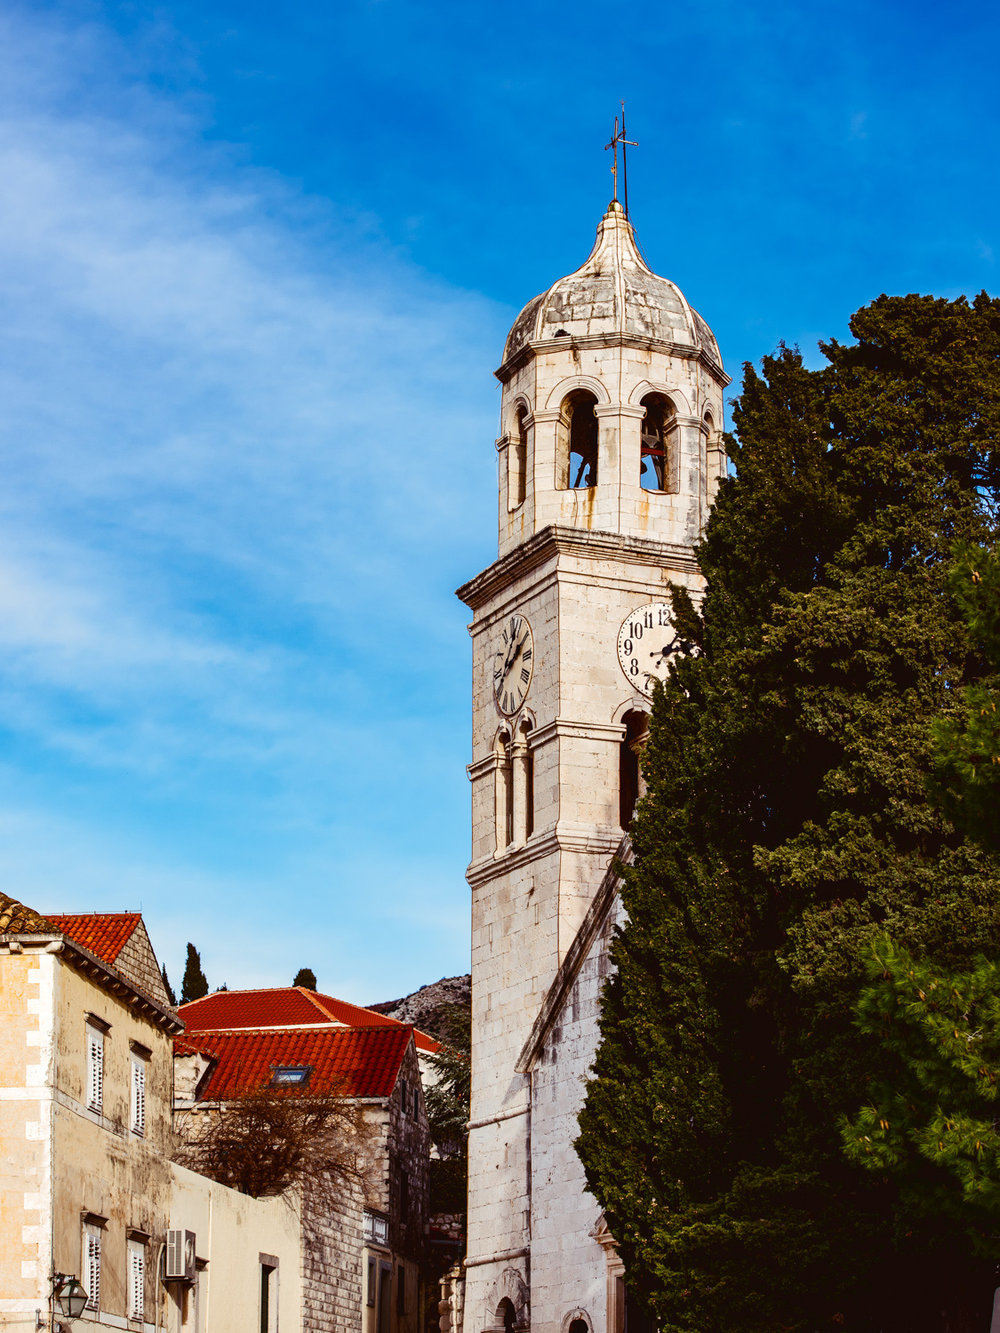 A beautiful steeple in the quiet town of Cavtat Croatia on our day trip from Dubrovnik.